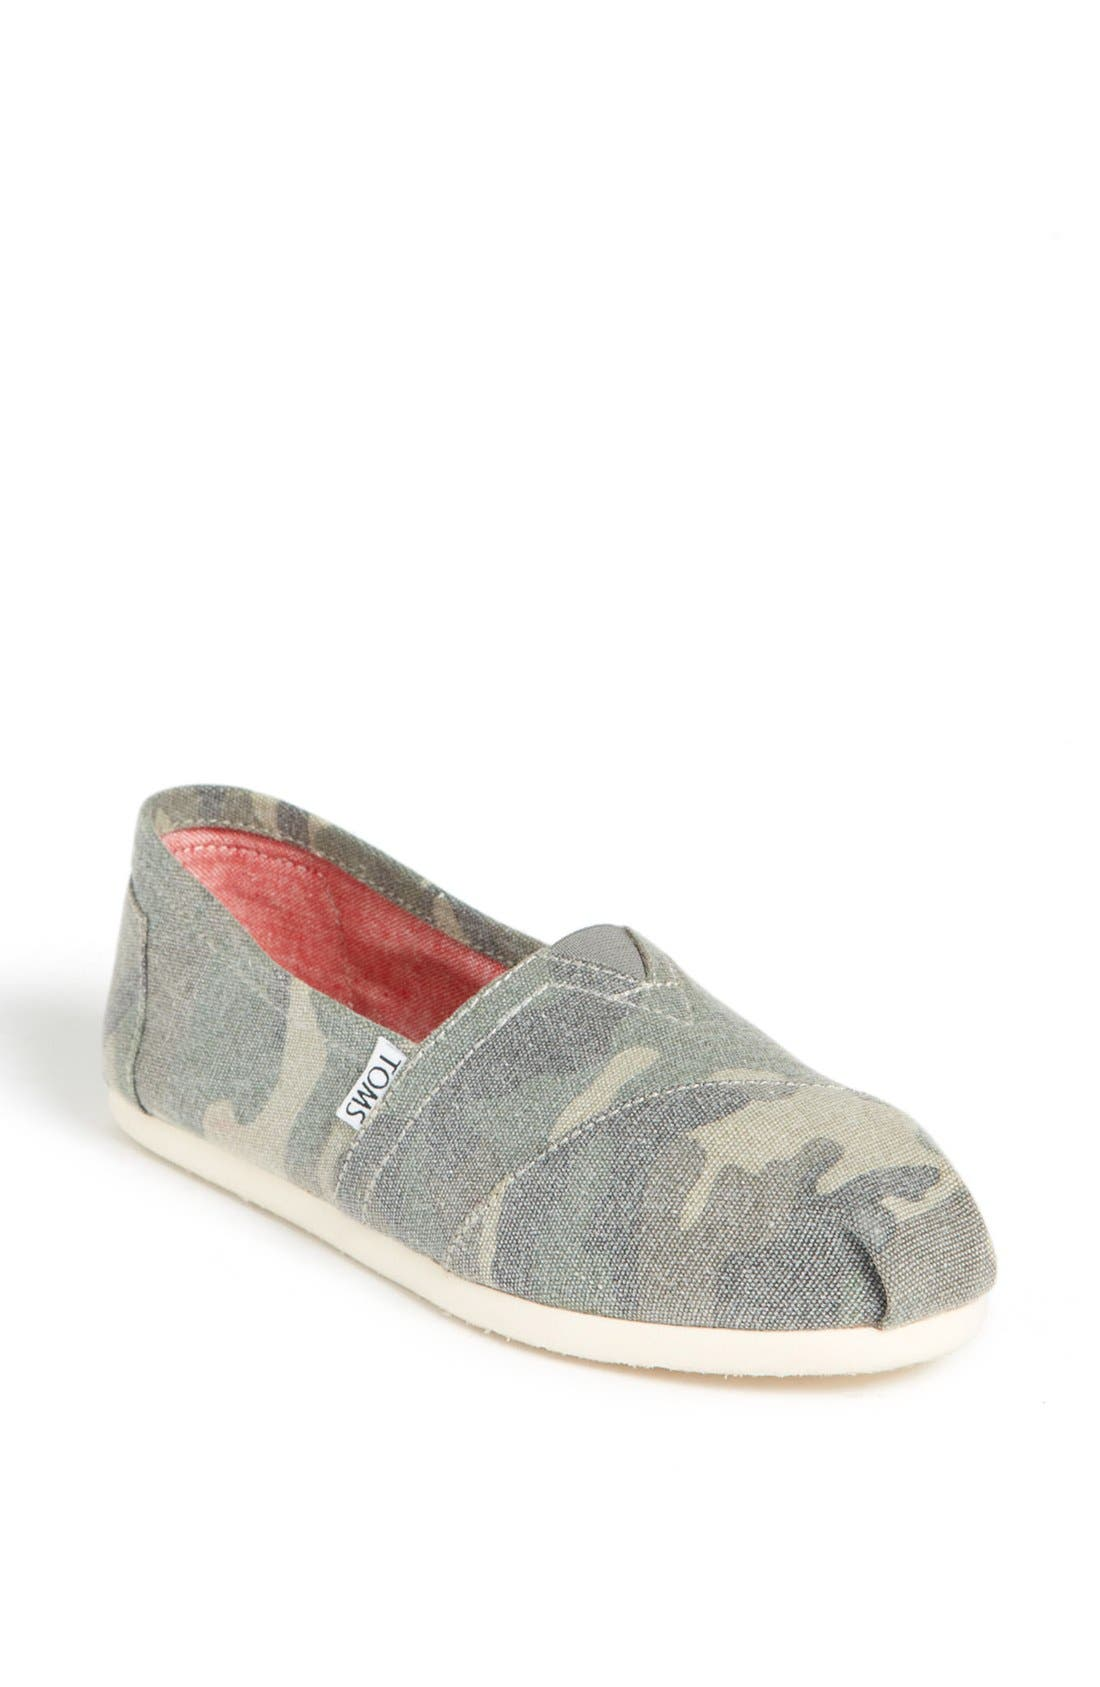 Main Image - TOMS 'Classic - Camo' Canvas Slip-On (Women)